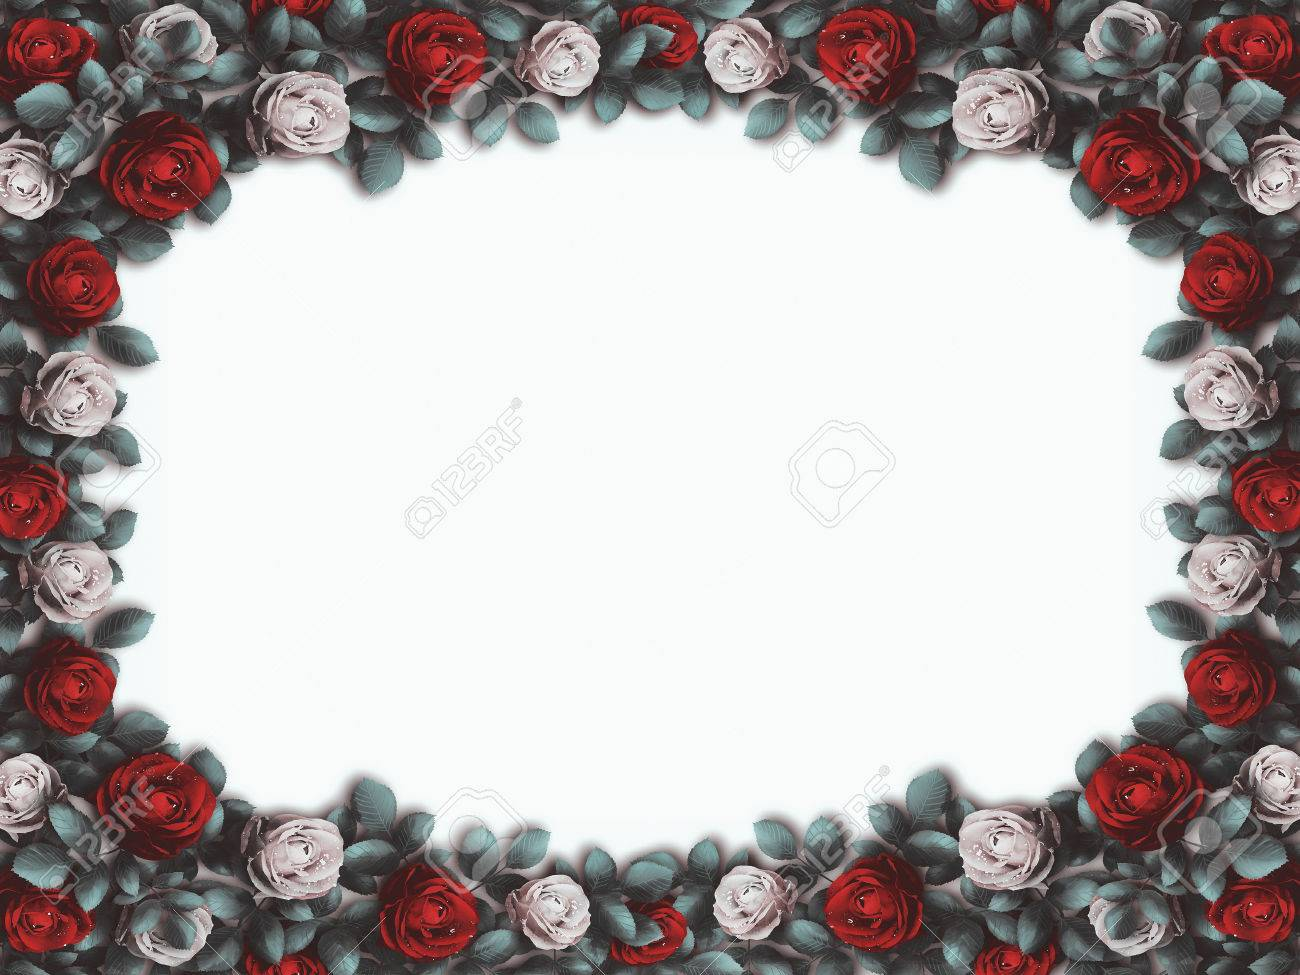 Alice In Wonderland Red Roses And White Roses On White Background